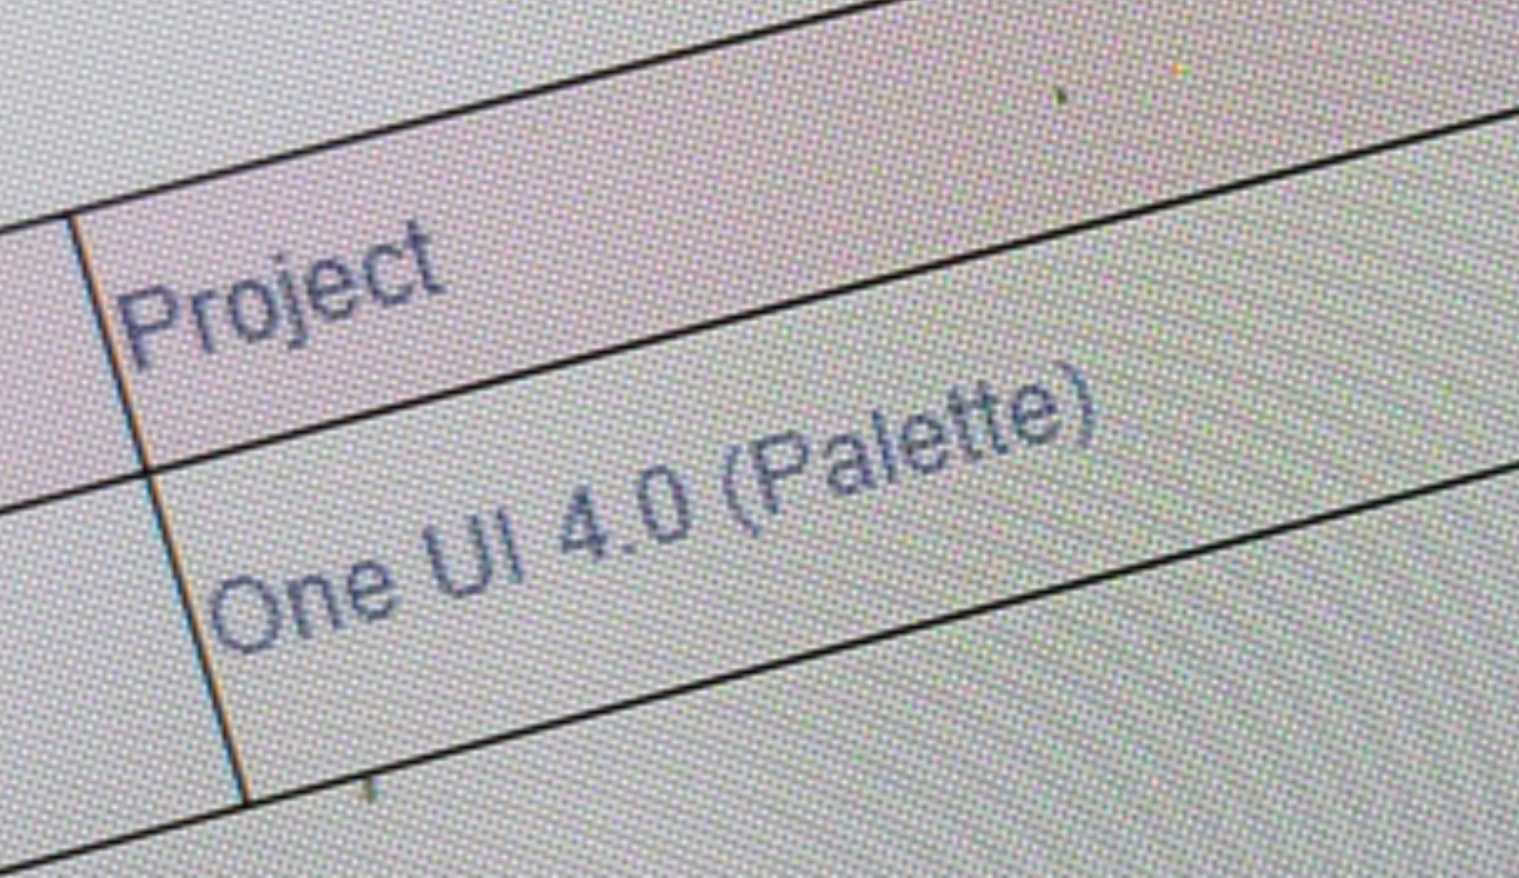 samsung one ui 4.0 android 12 palette